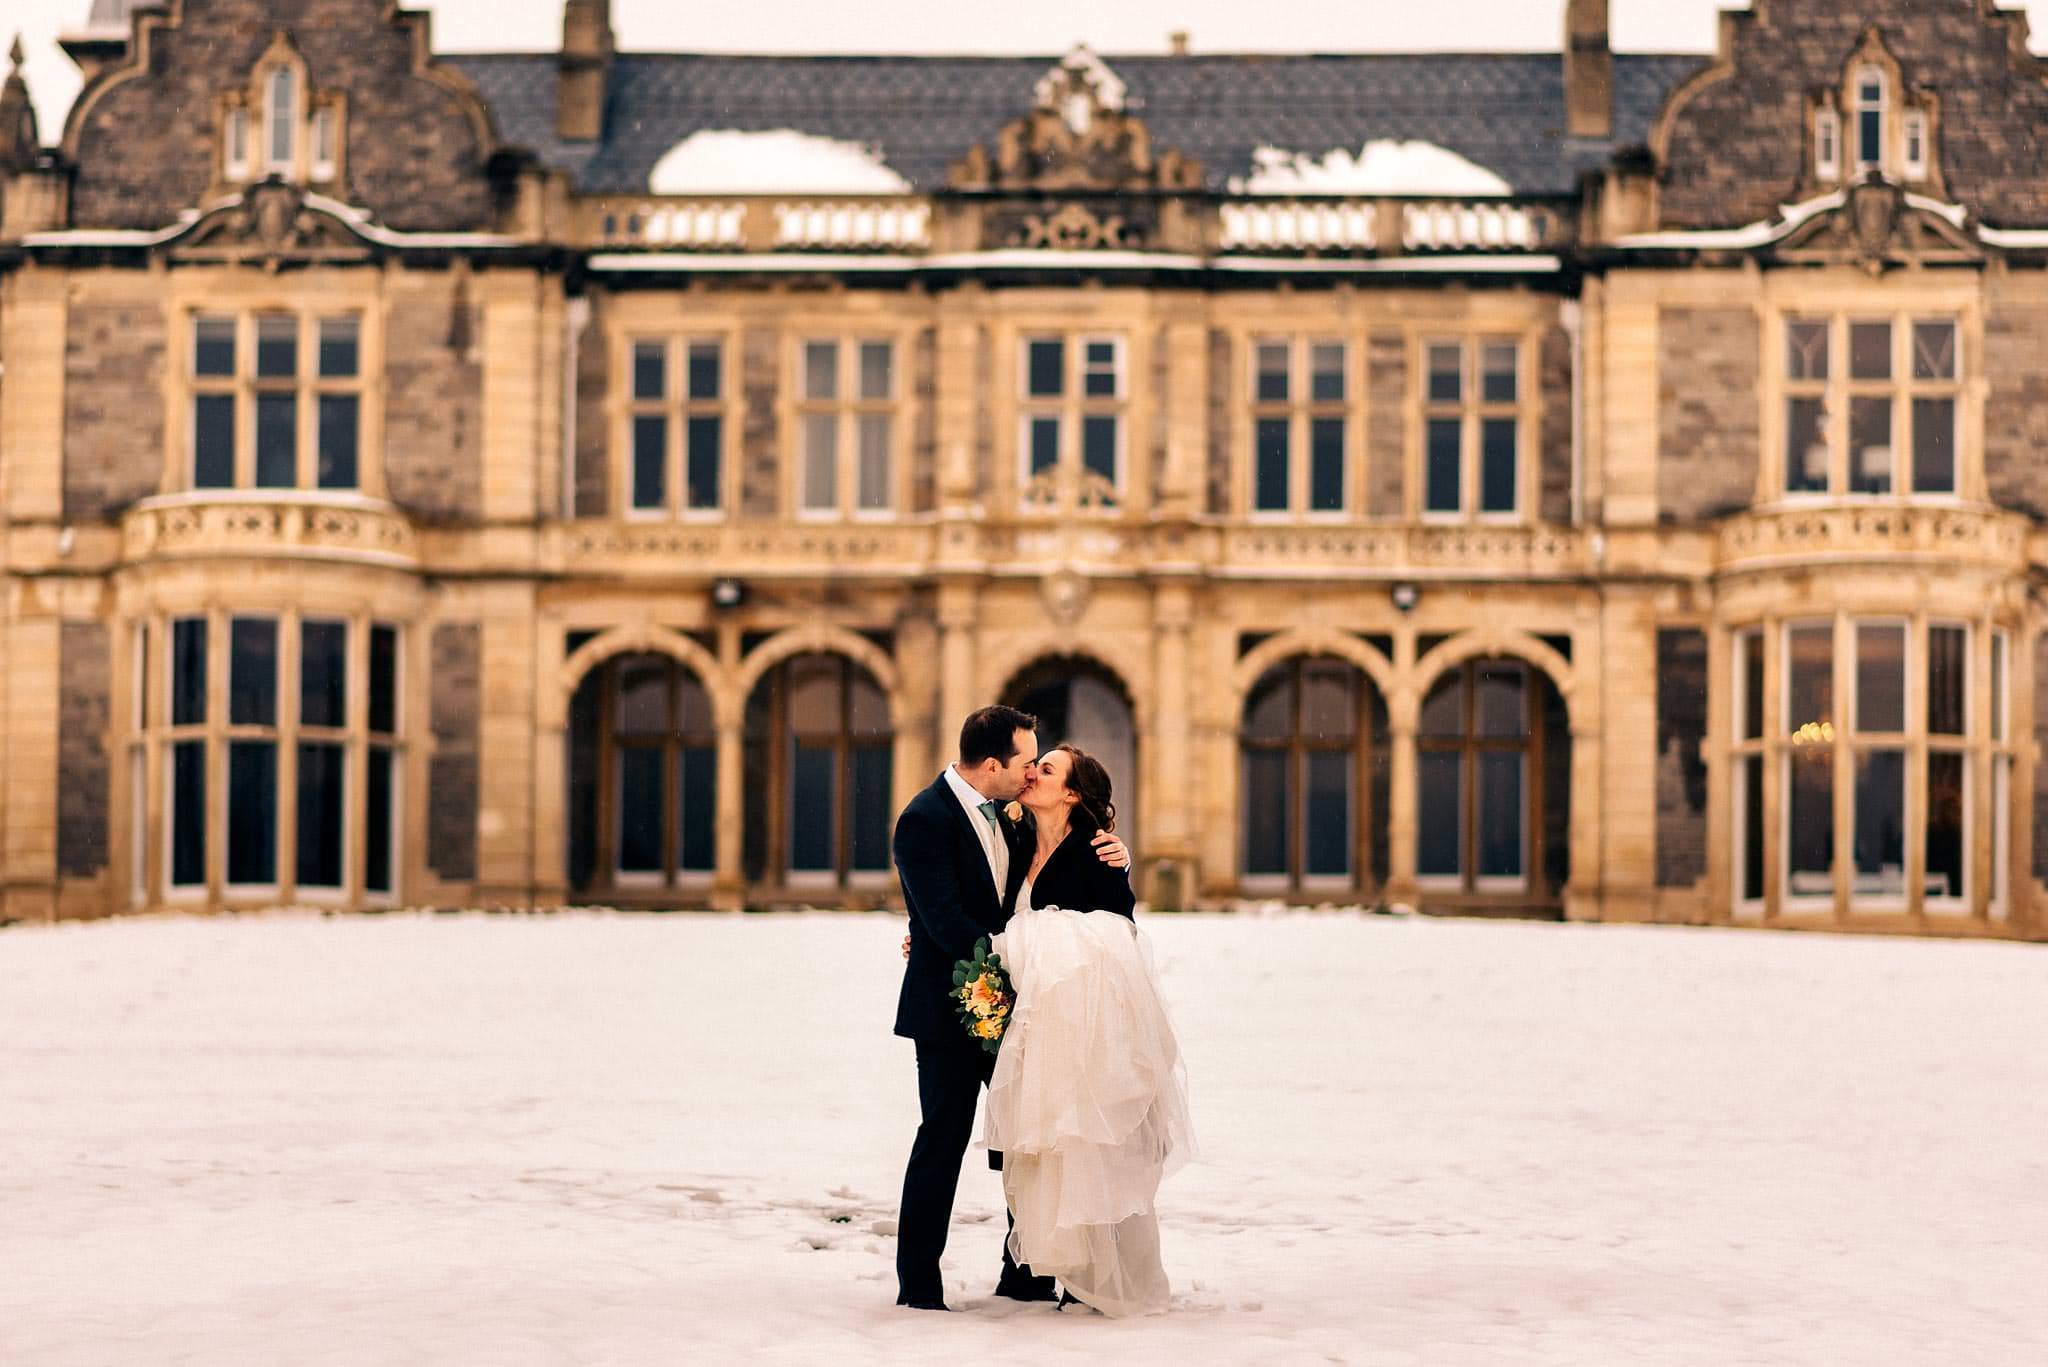 Winter Wedding in the Snow at Clevedon Hall